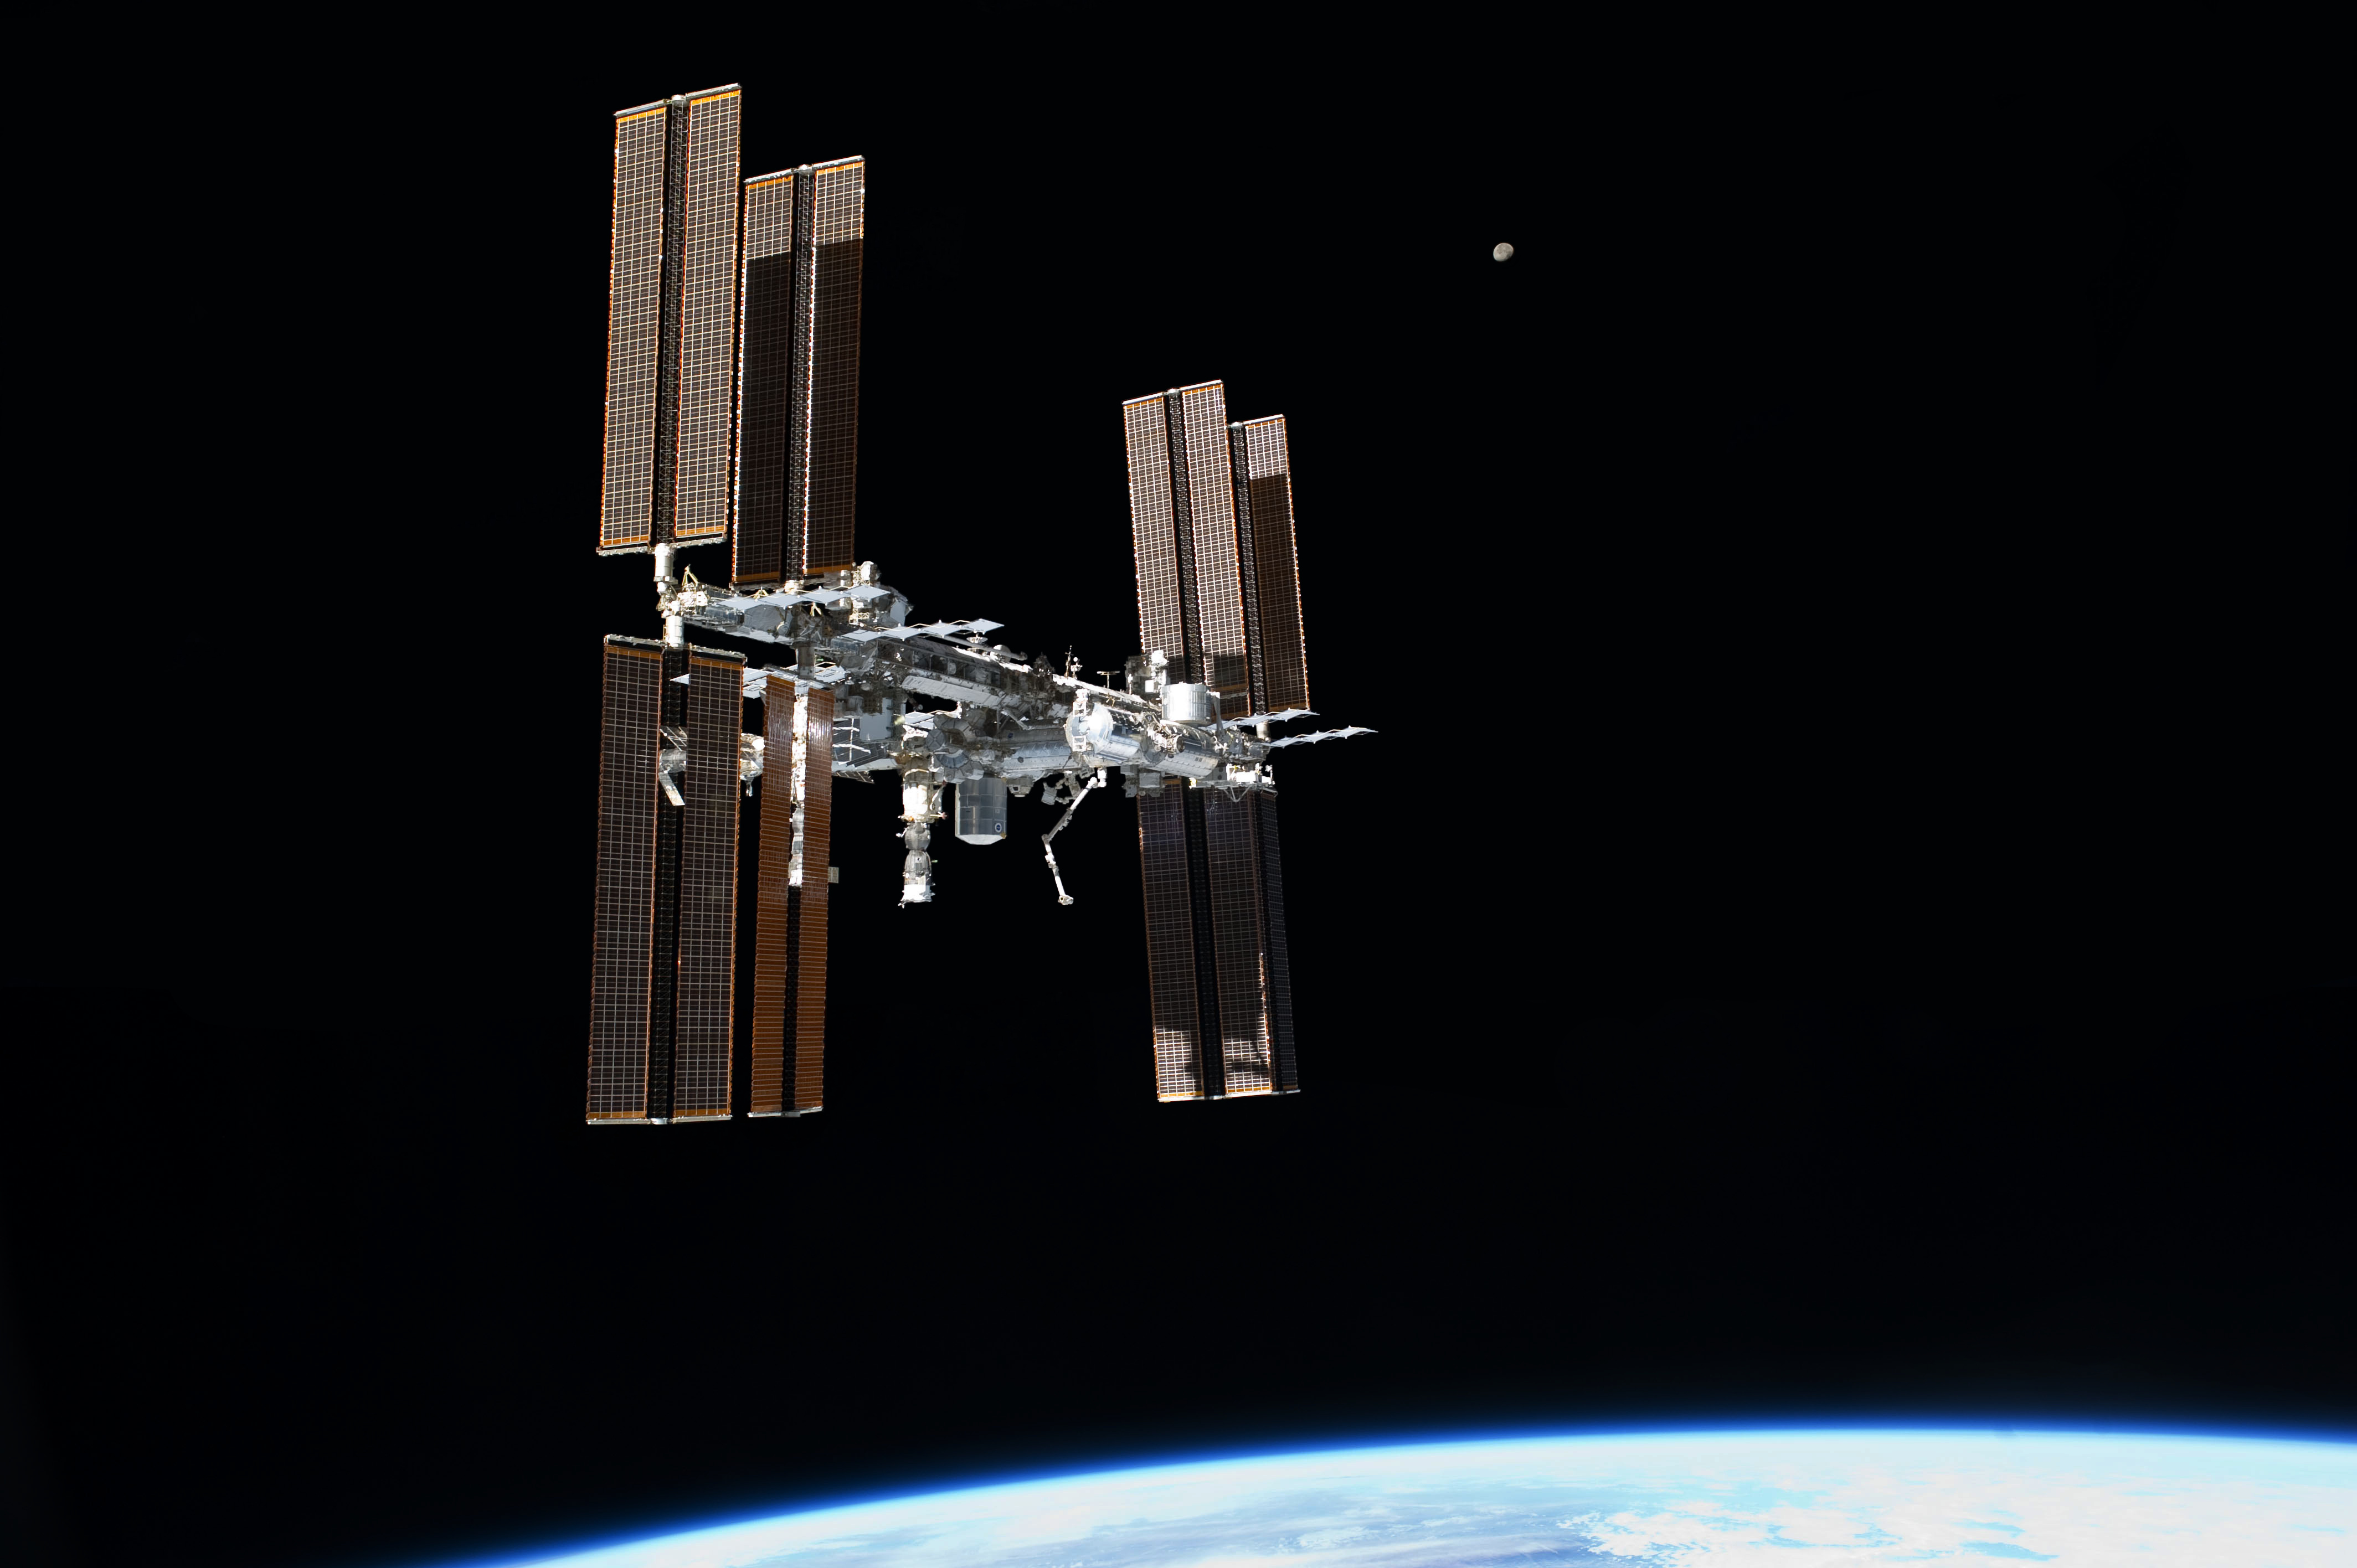 Space station - Wikipedia